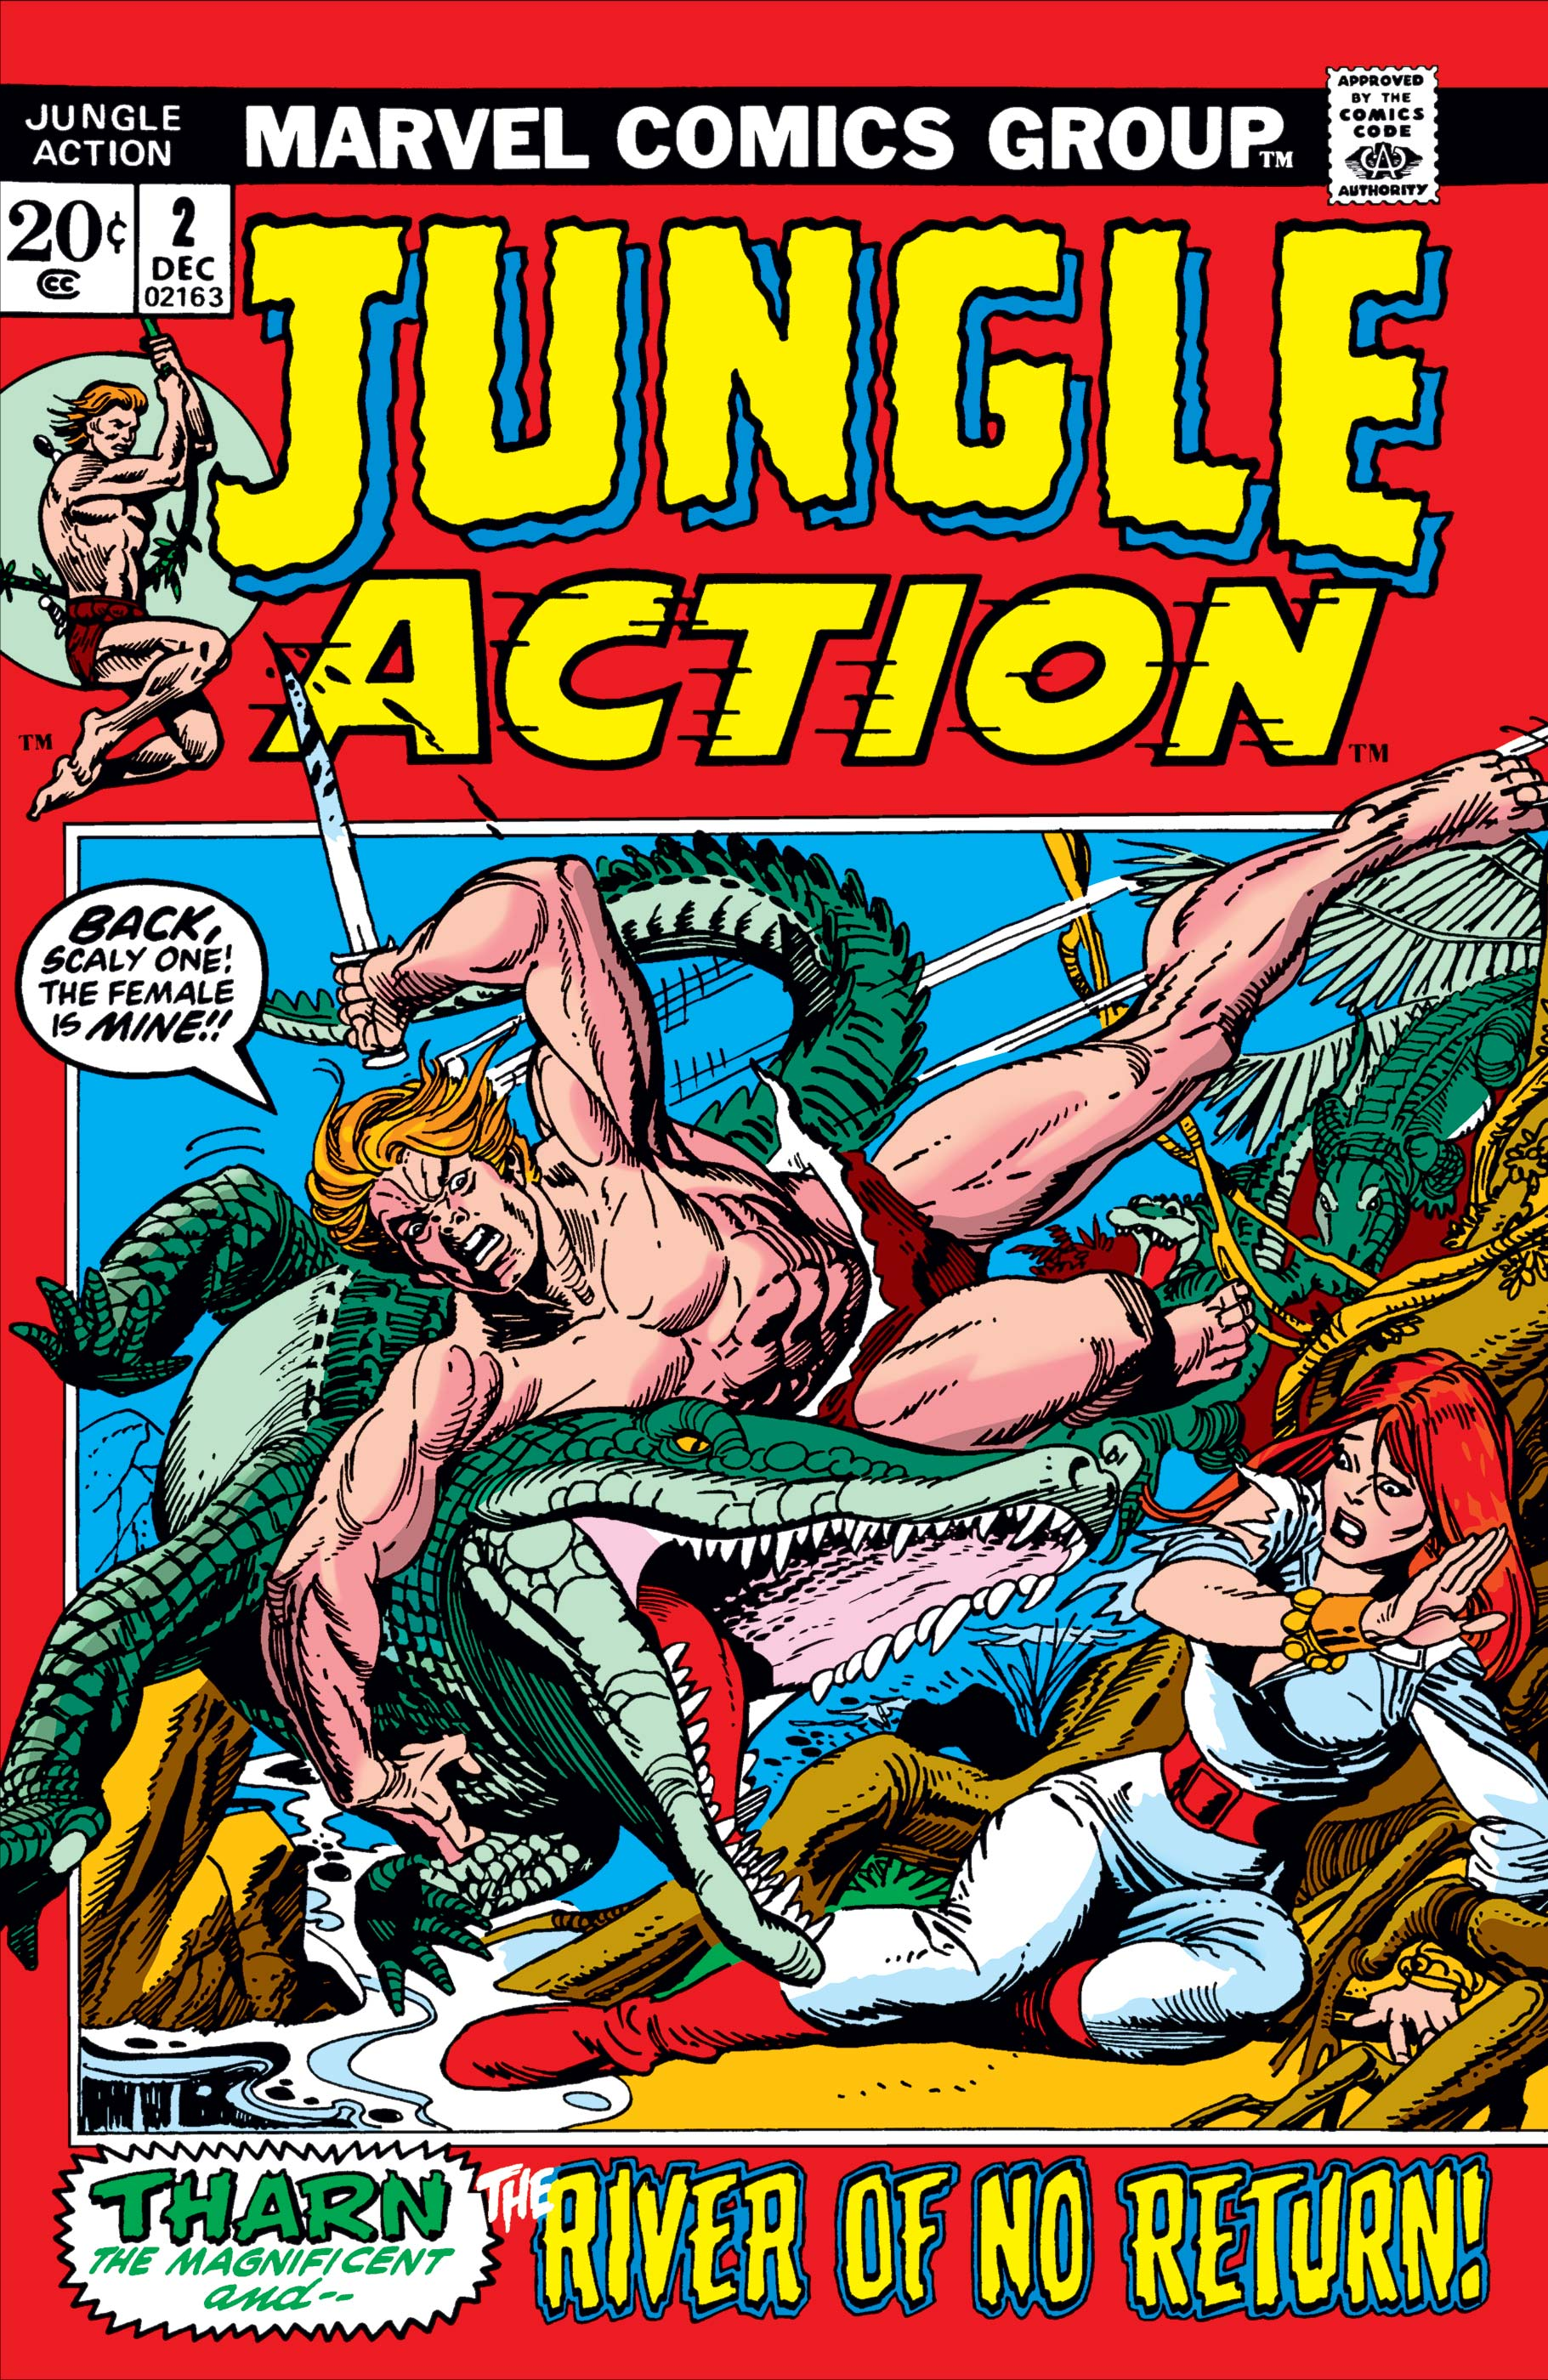 Jungle Action (1972) #2